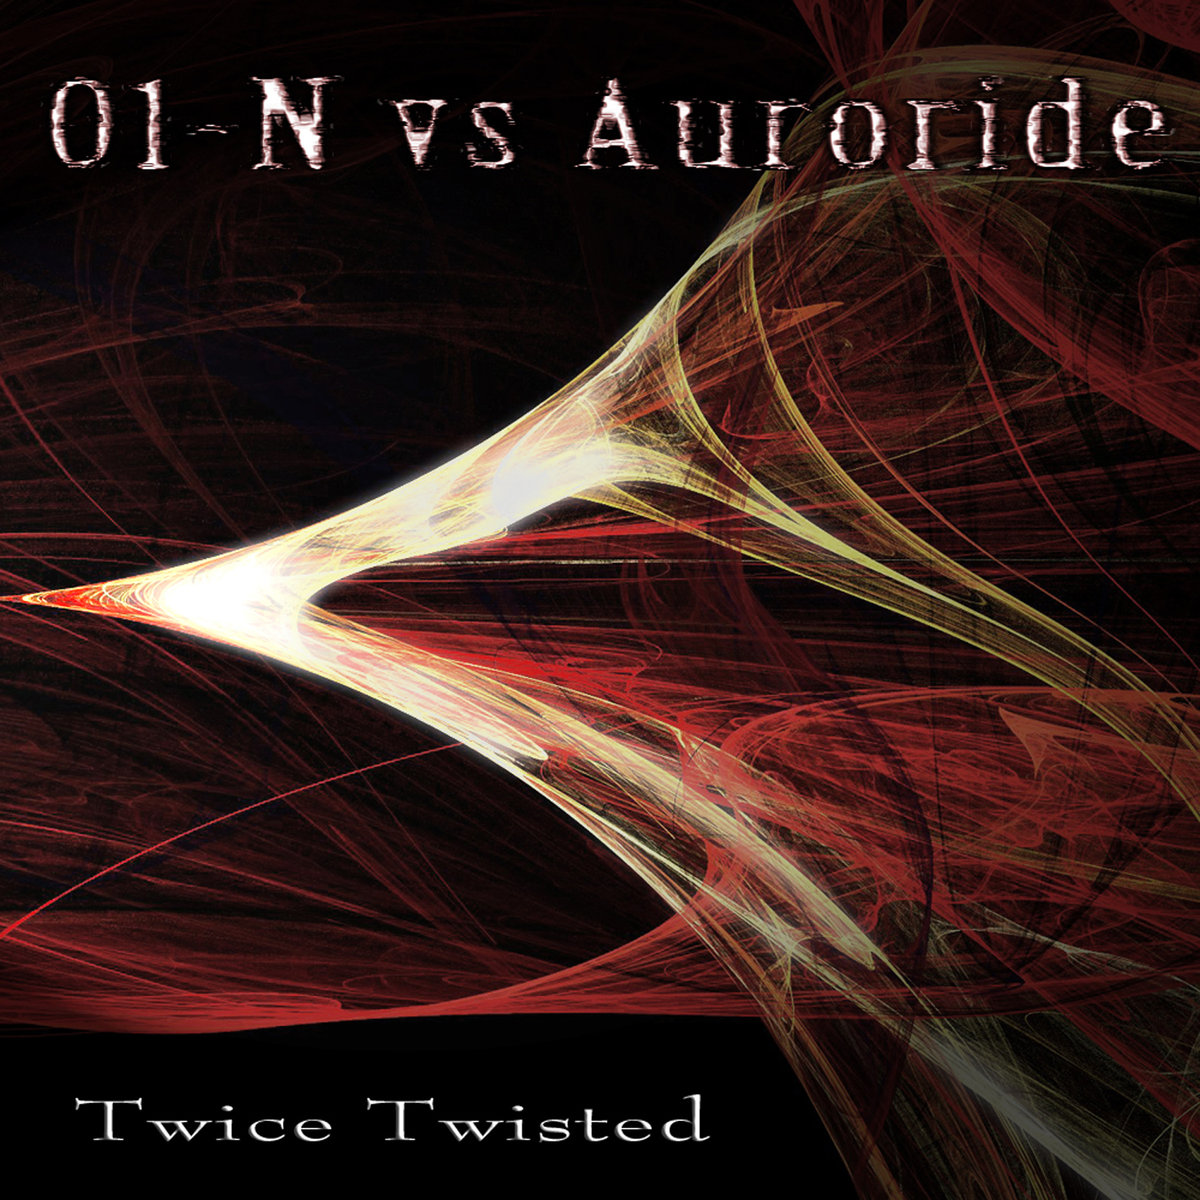 01-N & Auroride - Music for the Magic @ 'Twice Twisted' album (electronic, goa)